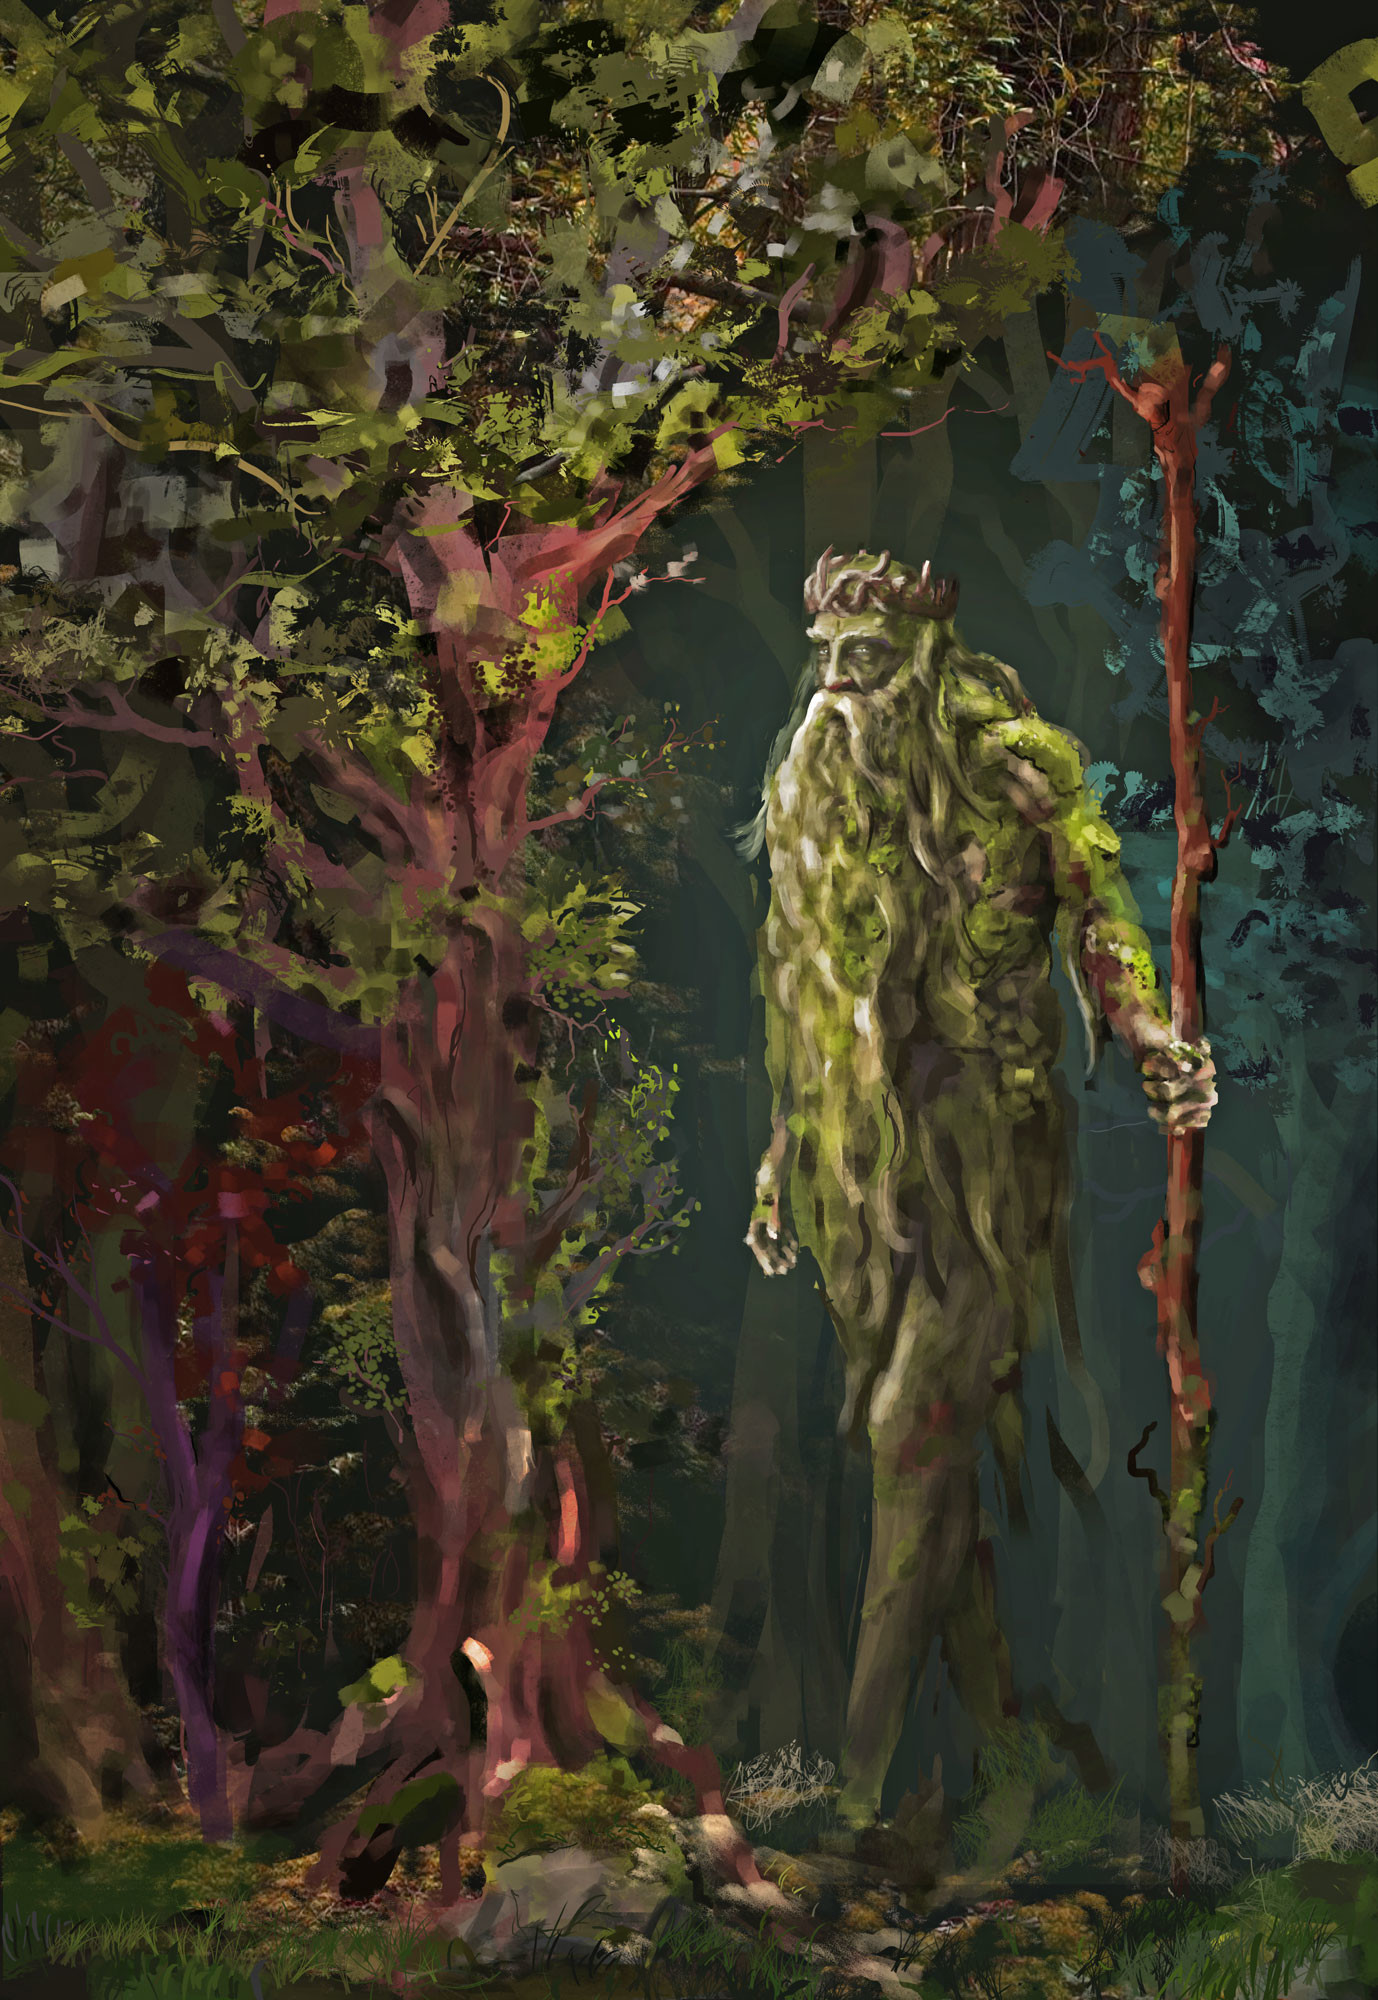 Leshy, King of the forest